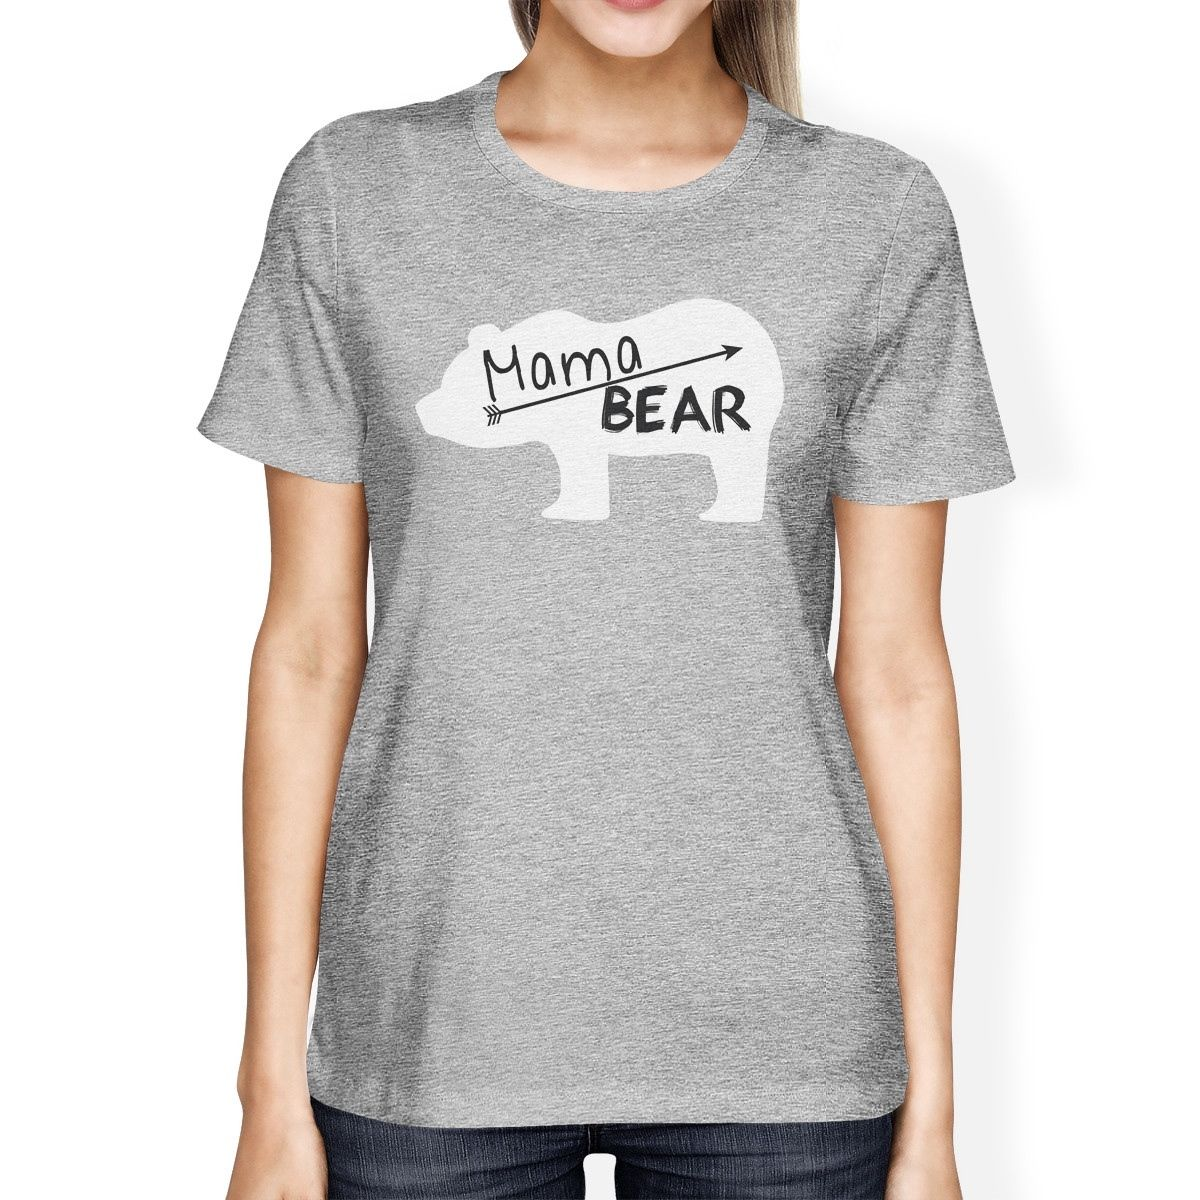 Mama Bear Womens Gray Graphic T Shirt Gift Ideas for Mothers Day Clothing Fashion Harajuku T-Shirt 2017 Summer Women